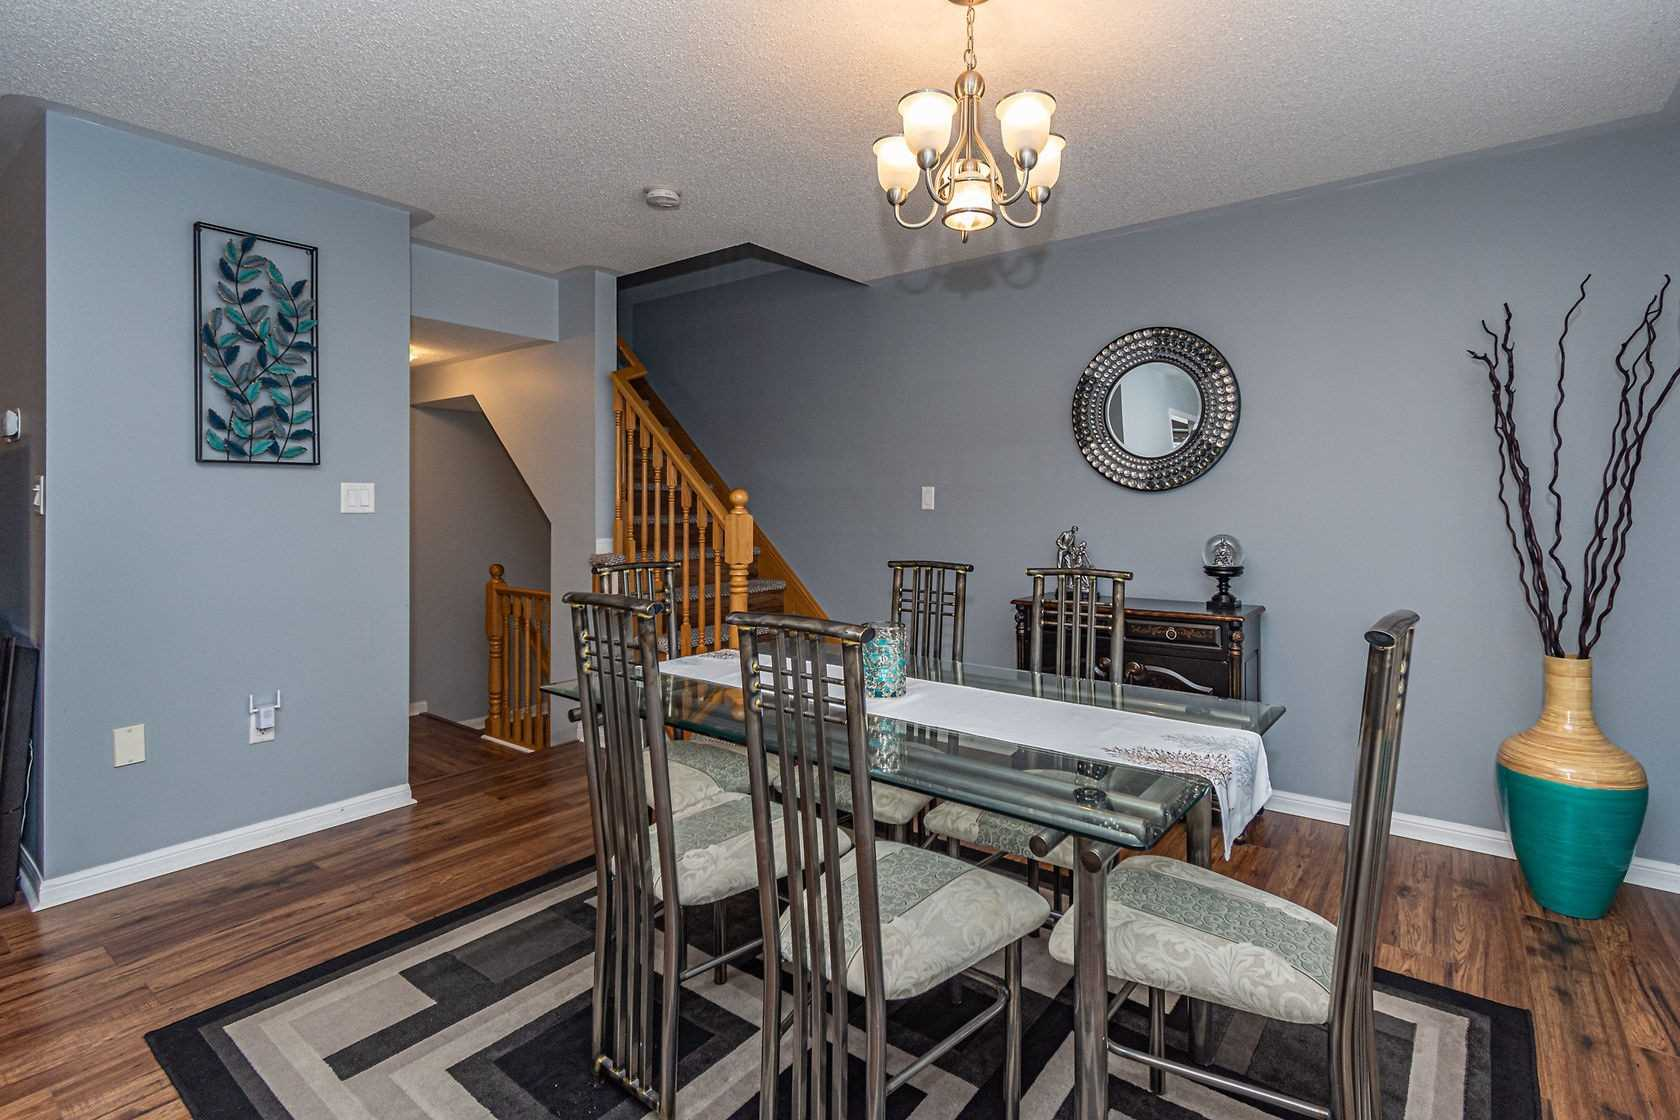 Image 4 of 20 showing inside of 3 Bedroom Att/Row/Twnhouse 3-Storey house for sale at 912 Ambroise Cres, Milton L9T0M2